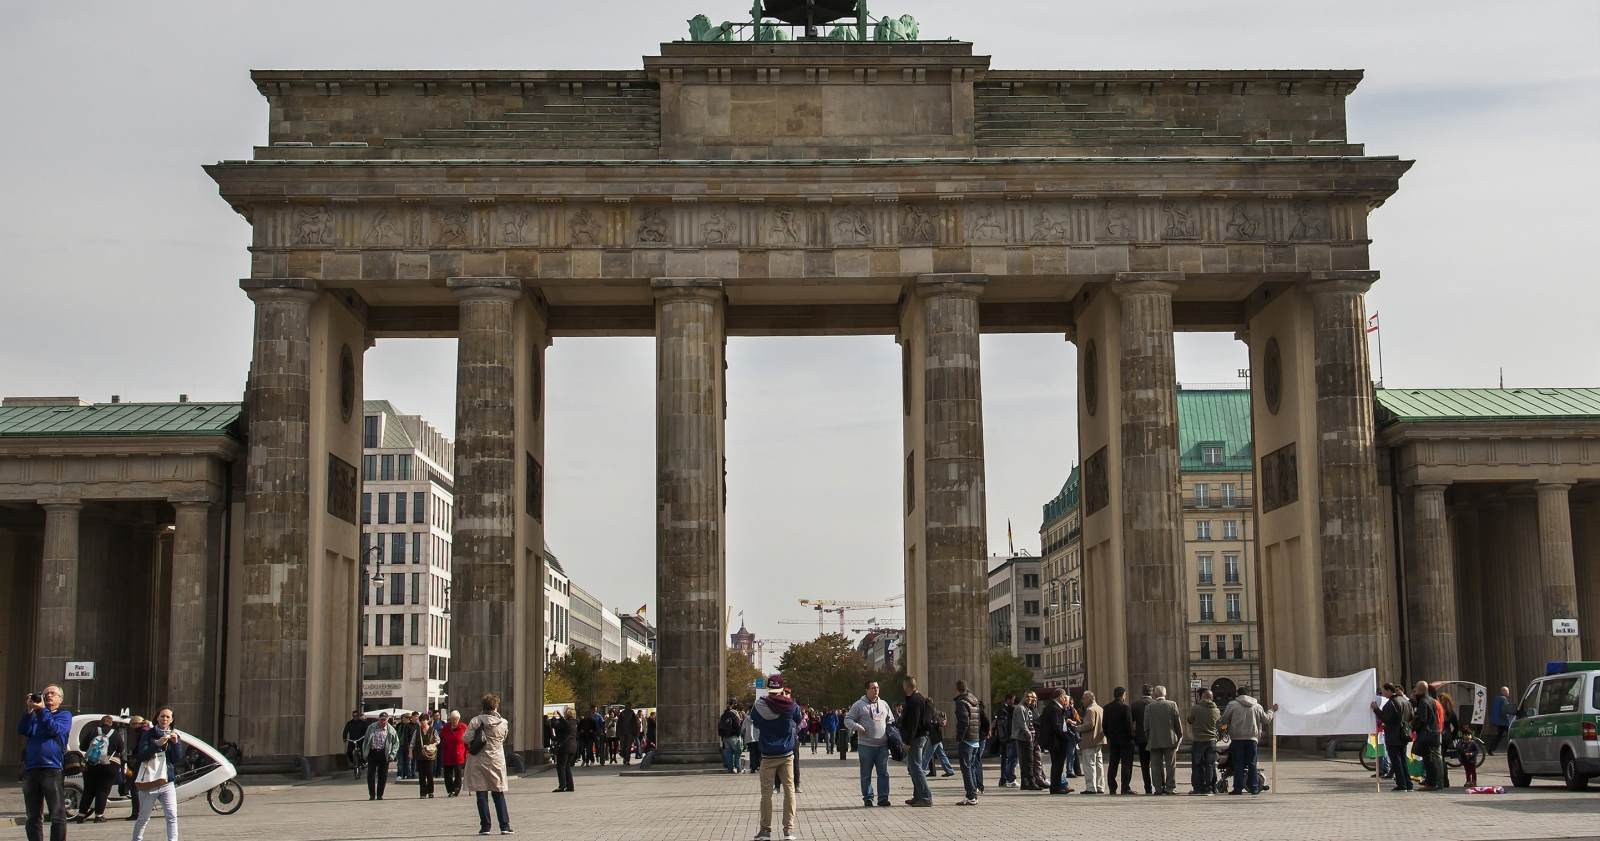 Berlin Wall then and now